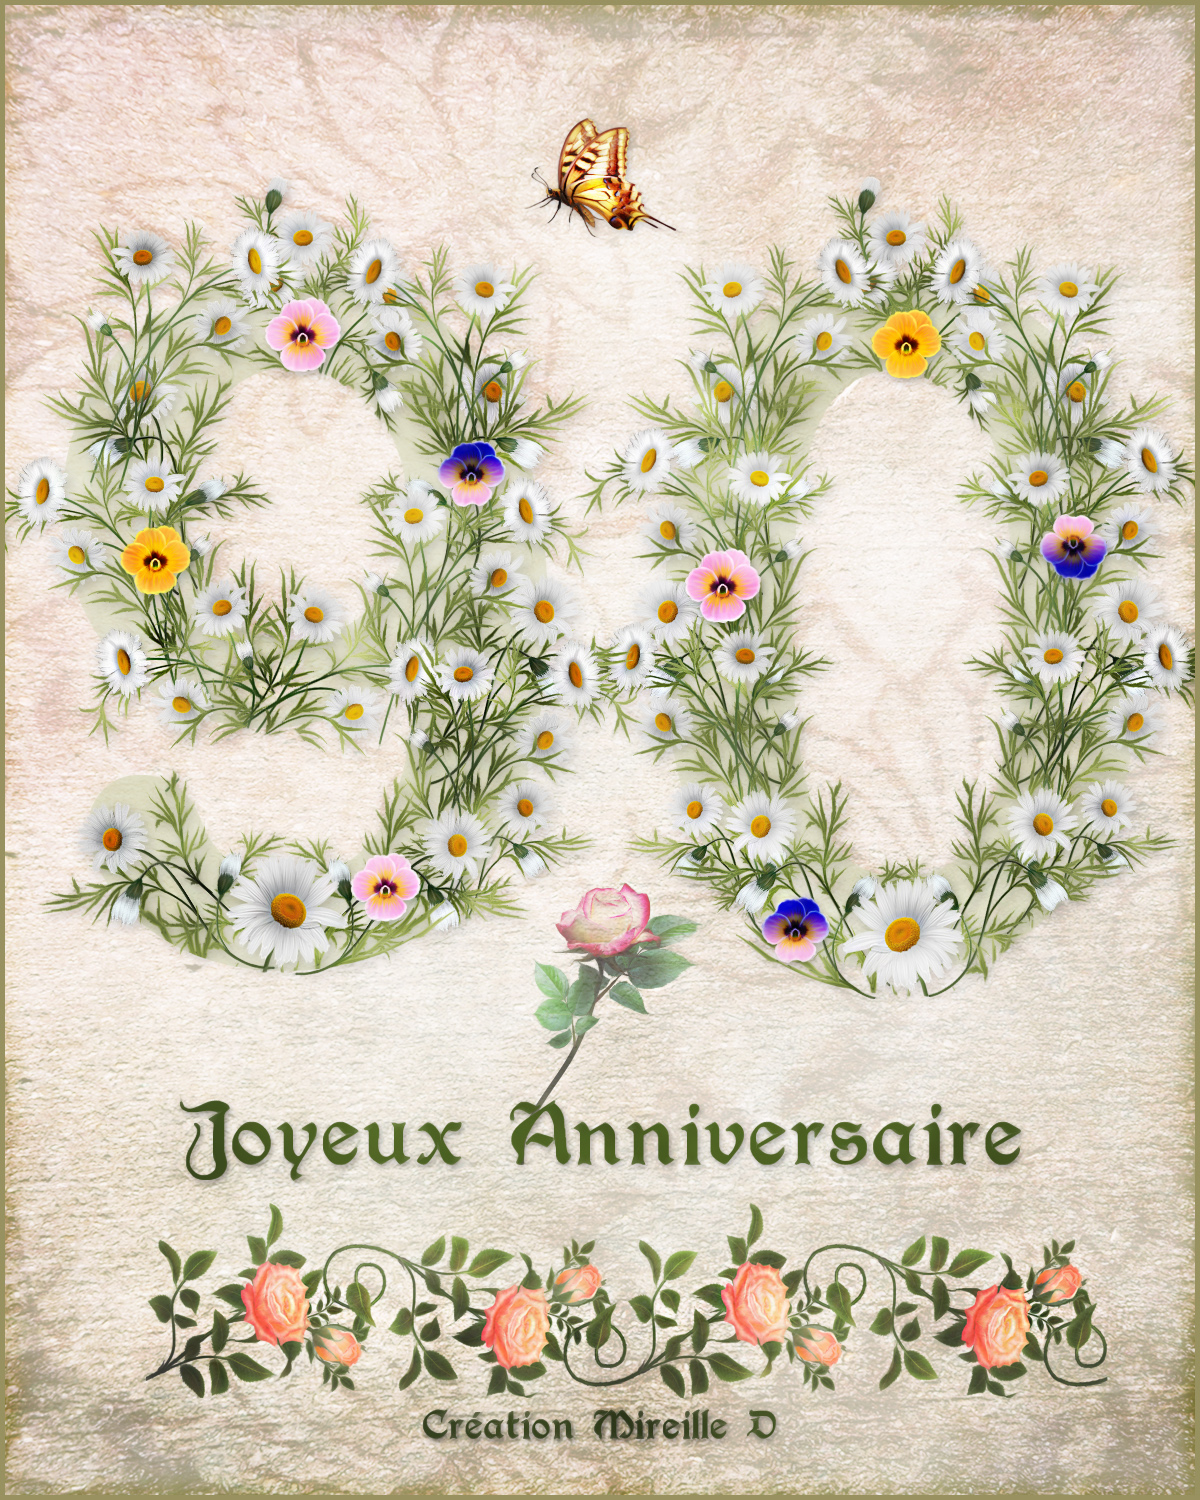 carte d 39 anniversaire pour 90 ans chez mireille d. Black Bedroom Furniture Sets. Home Design Ideas